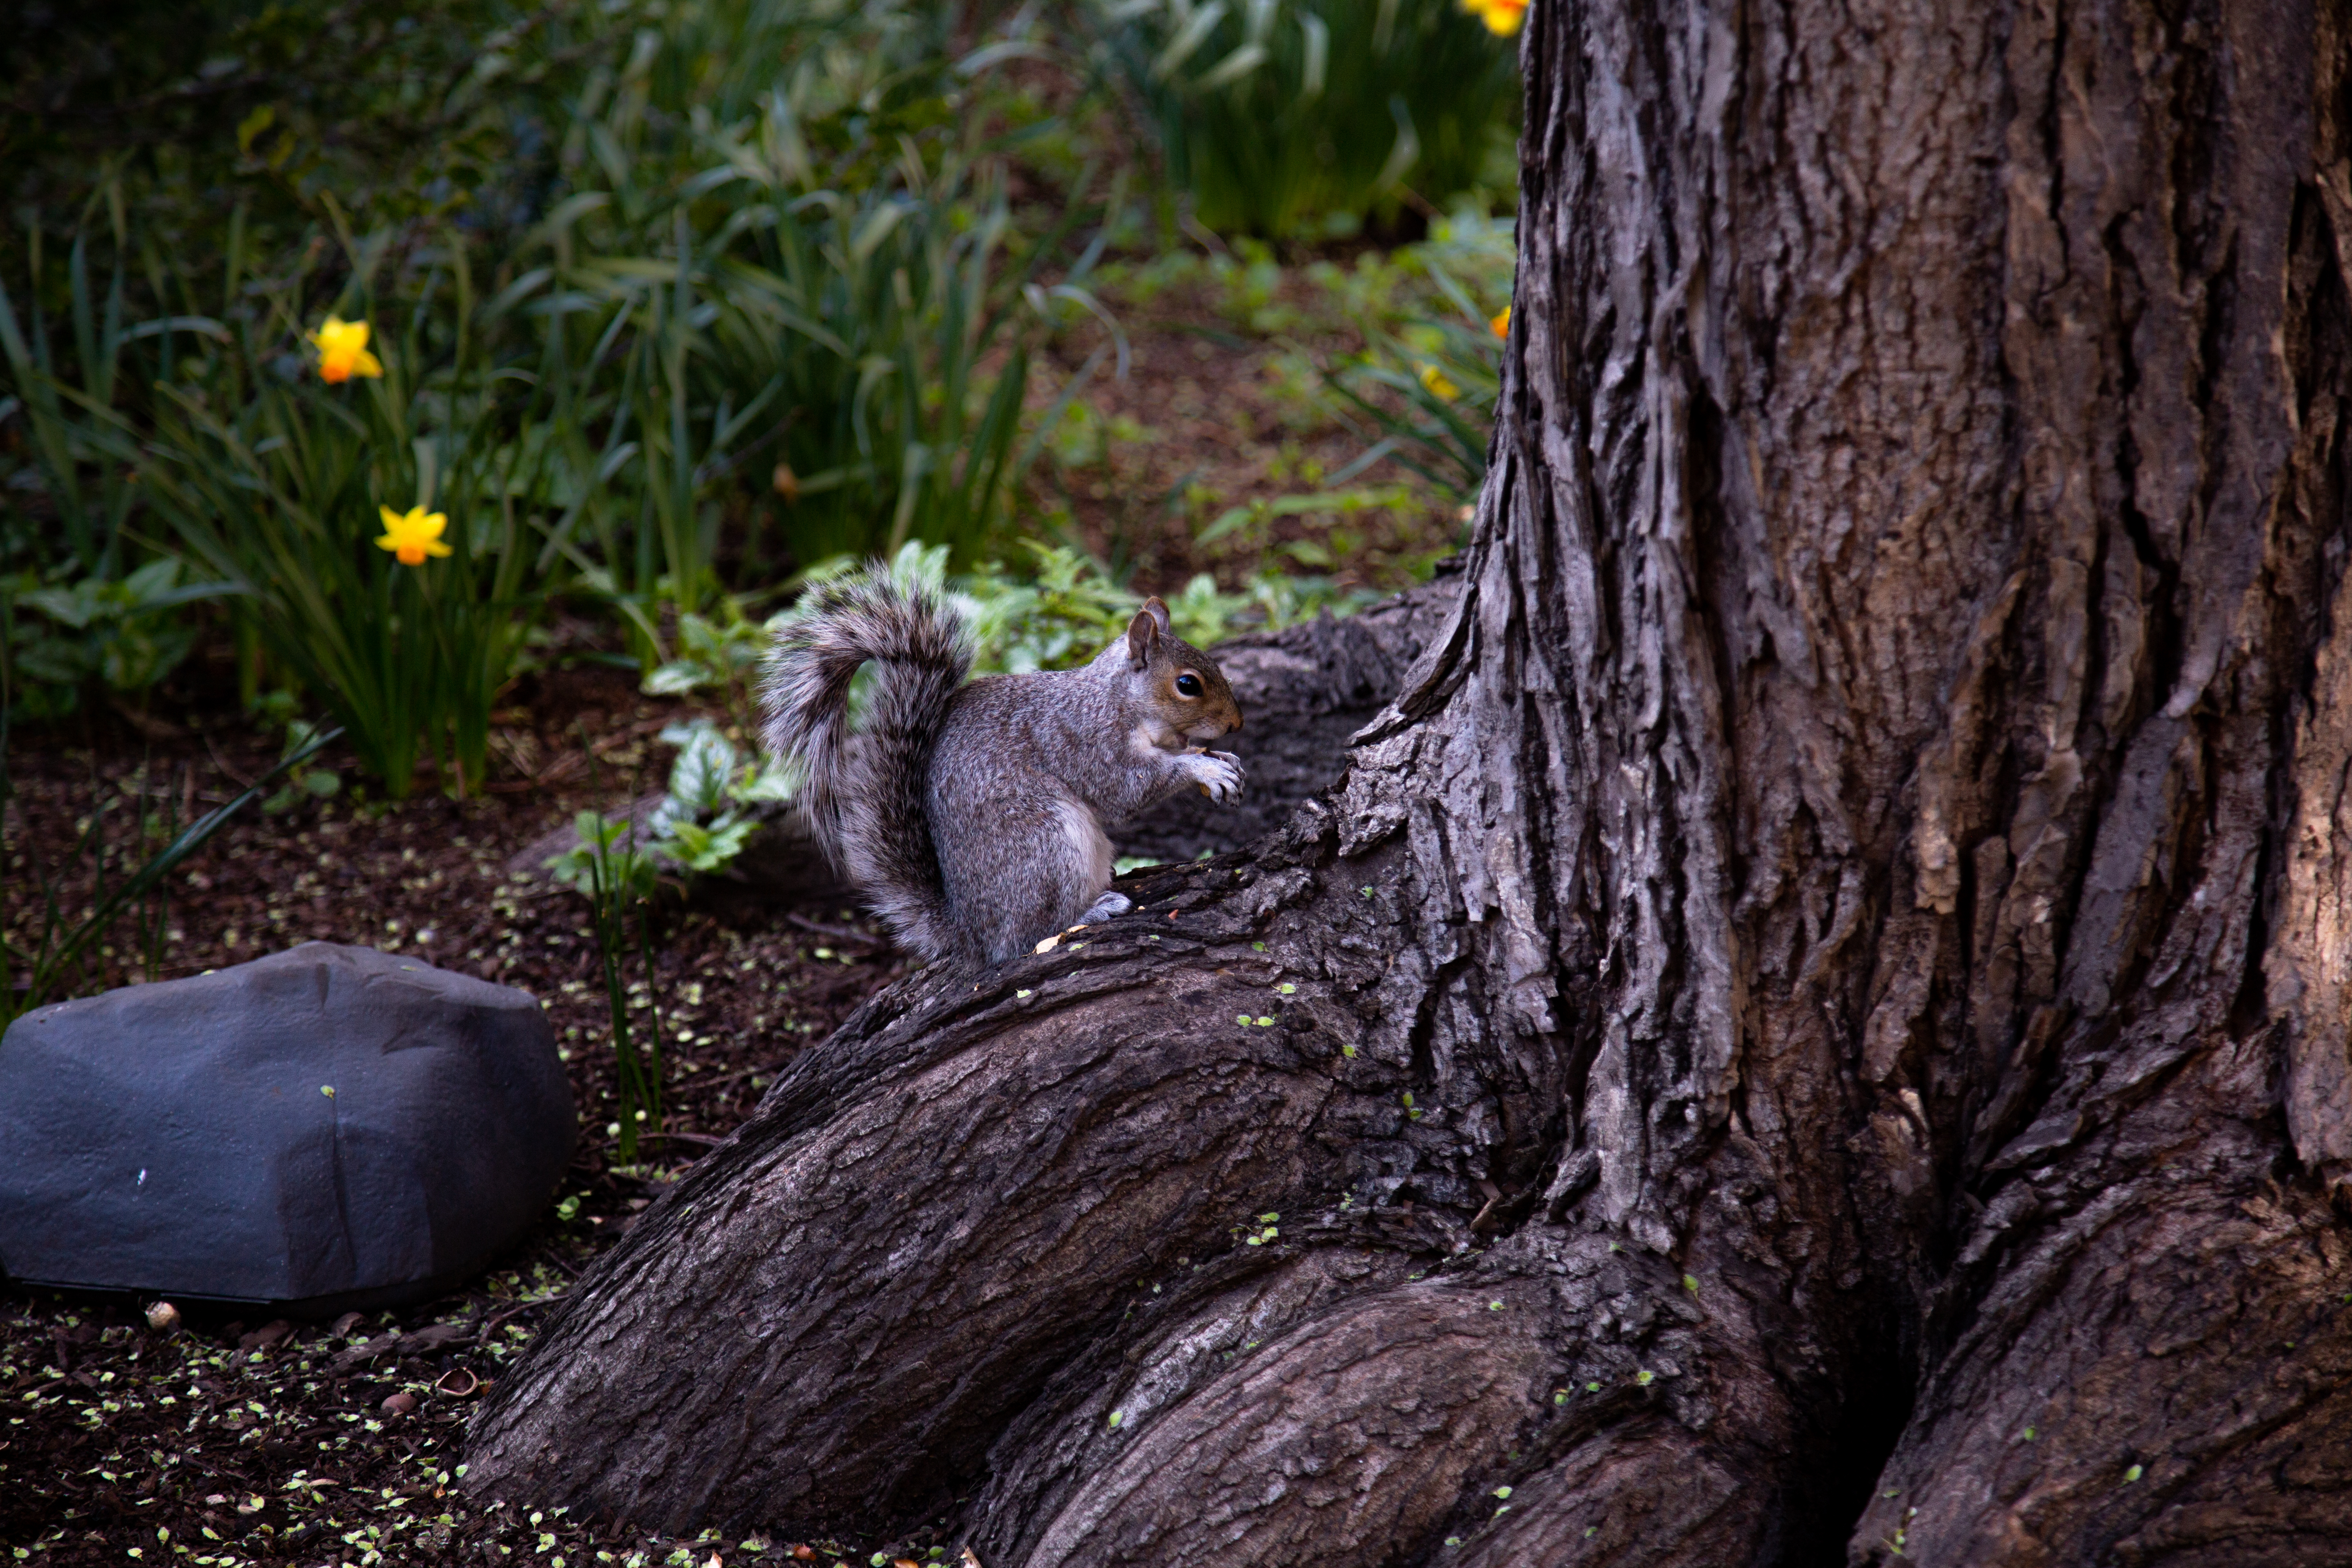 149134 download wallpaper Animals, Squirrel, Animal, Brown, Rodent, Wood, Tree screensavers and pictures for free